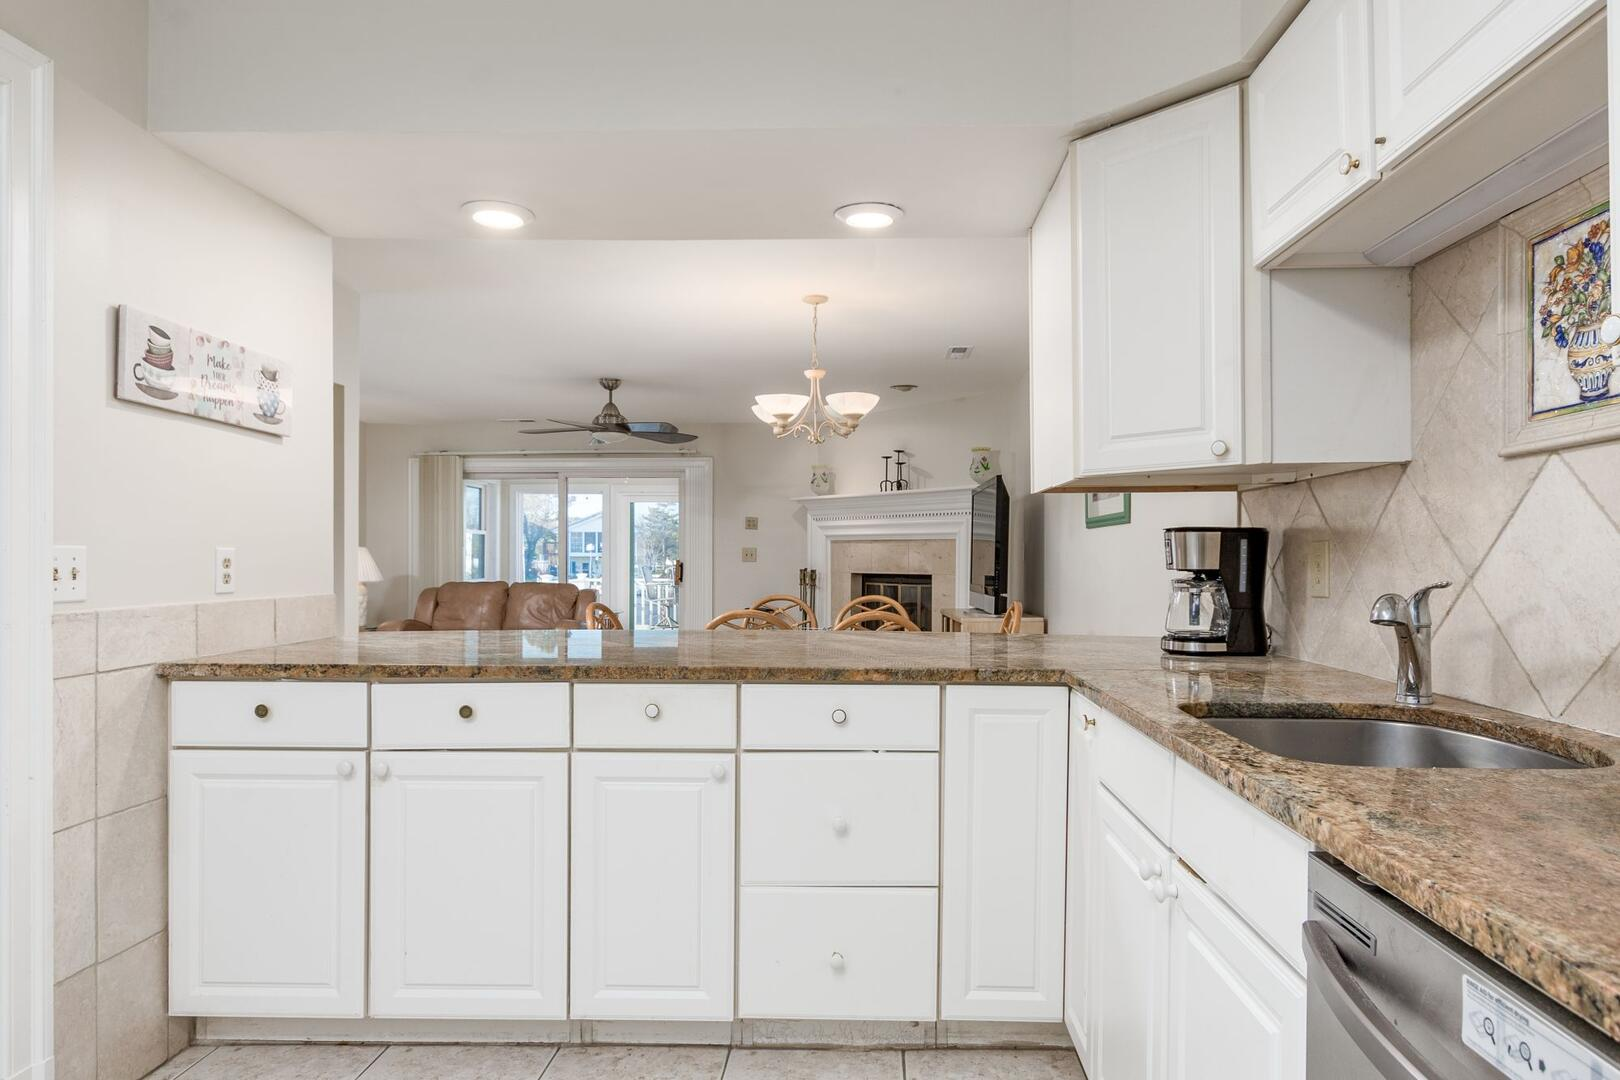 Kitchen of Sunset Harbour 14127B